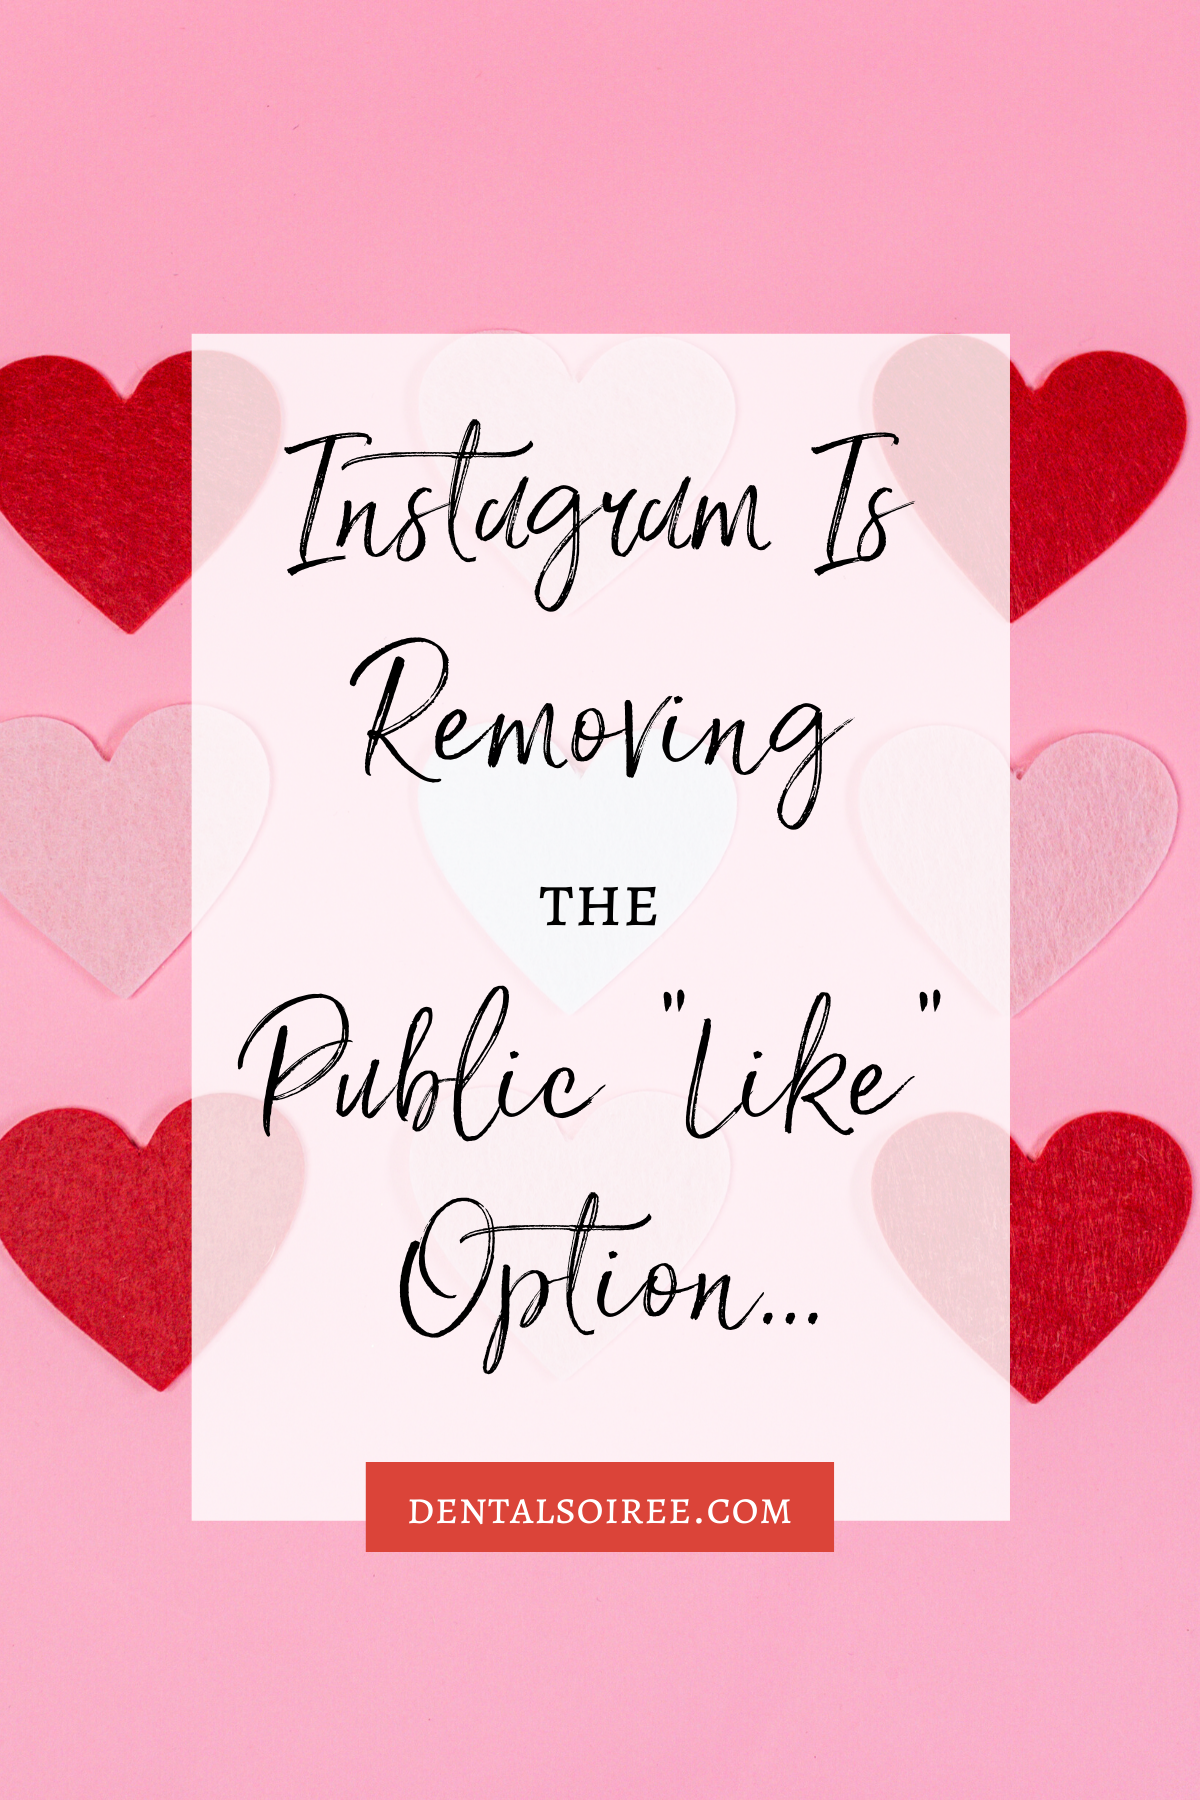 "Instagram is Removing the Public ""Like"" Option"